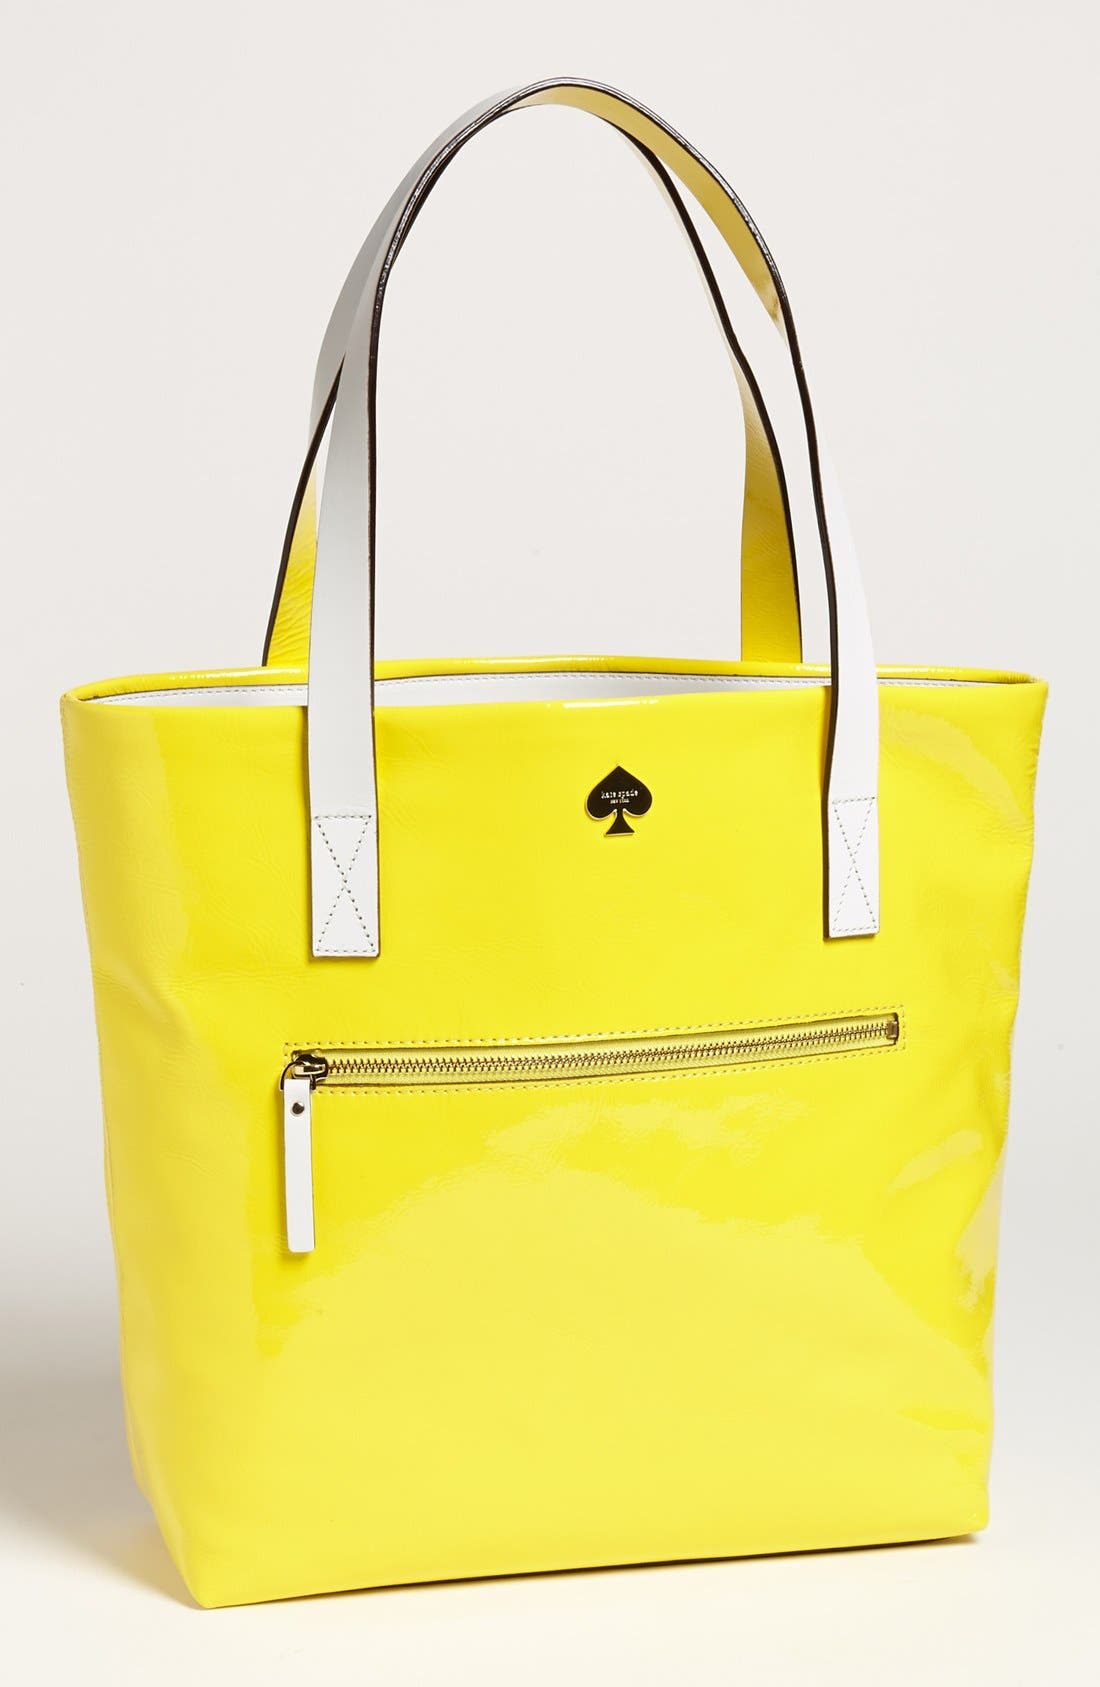 Main Image - kate spade new york 'flicker' patent leather bon shopper